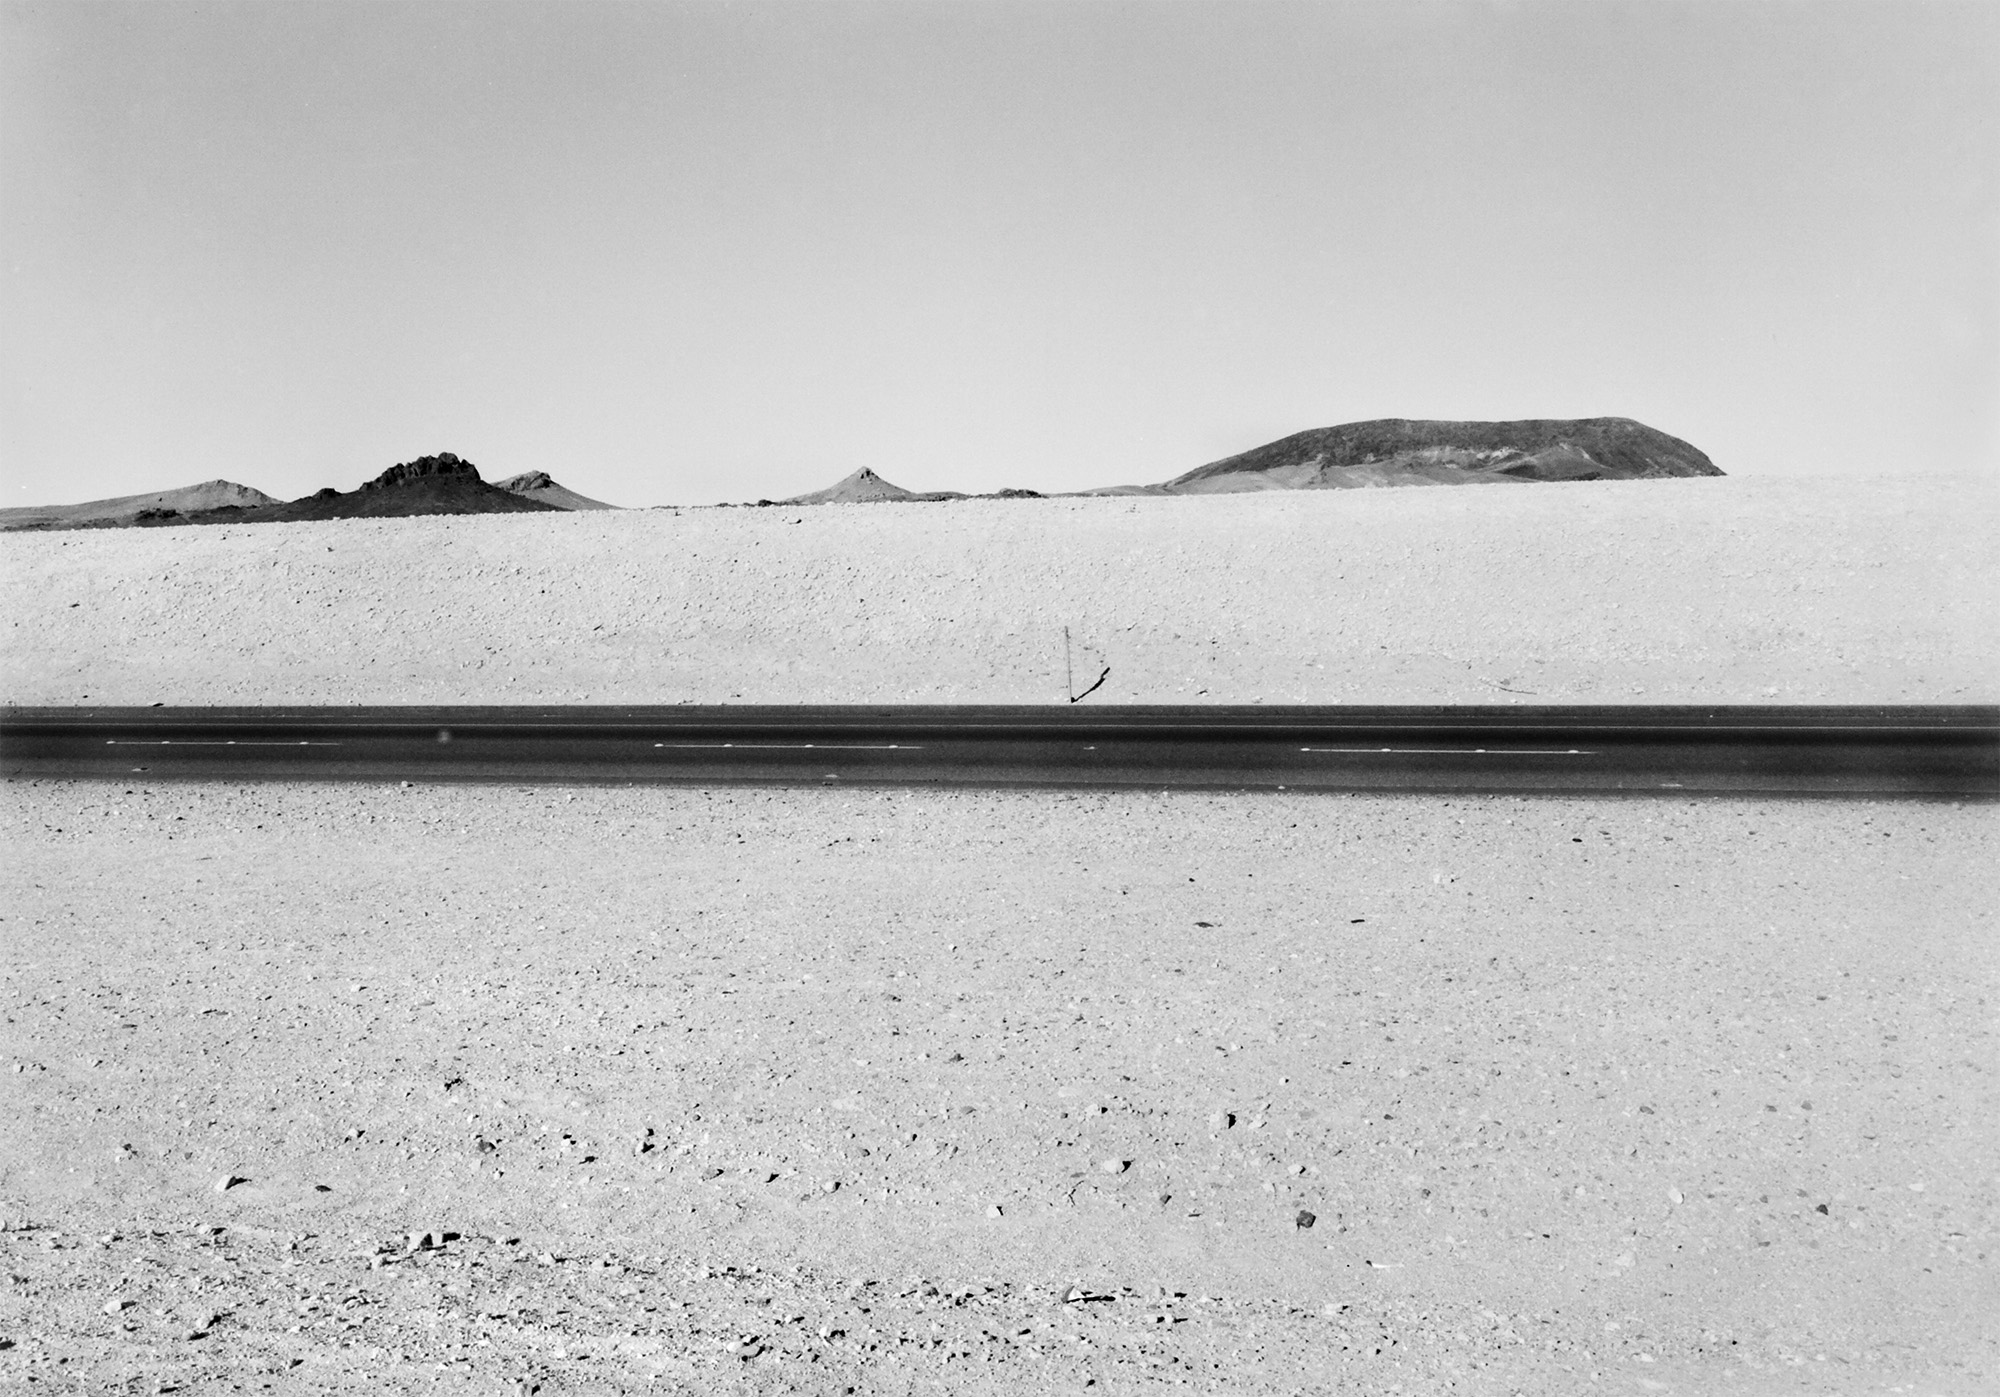 Interstate 14, near Las Vegas, Nevada, USA, 1977